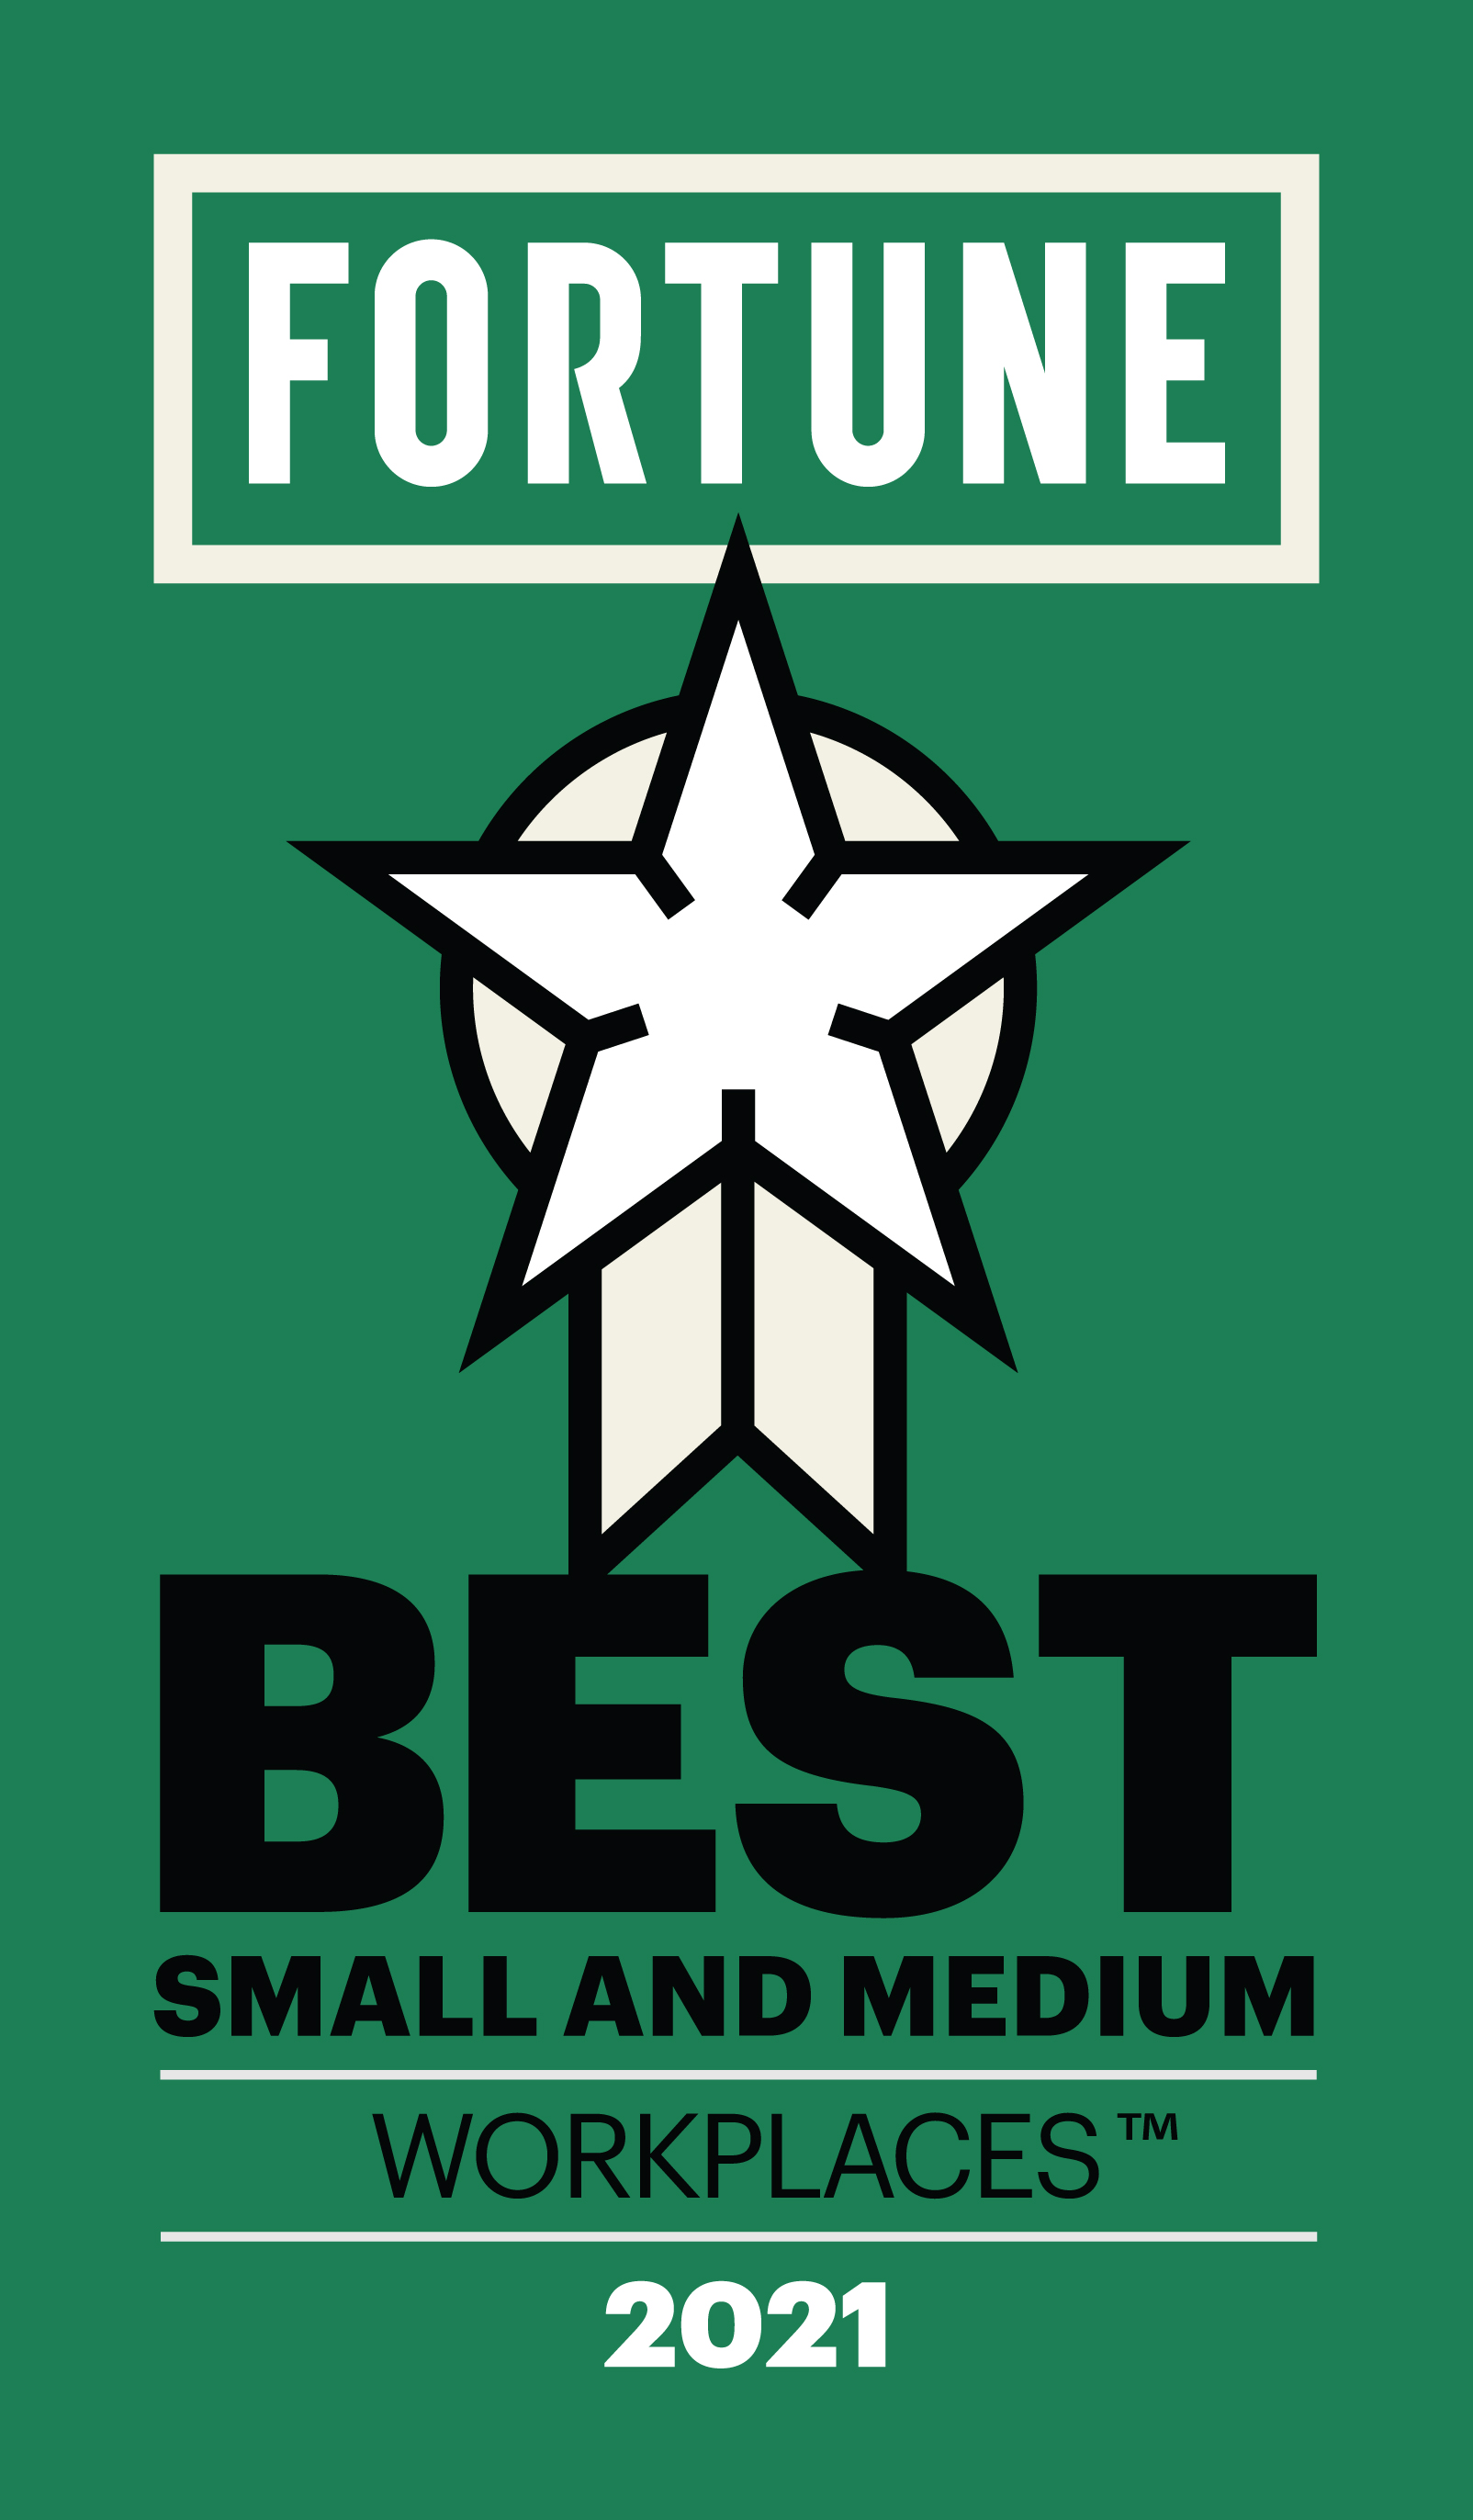 Best Small & Medium Workplace for 4th Consecutive Year